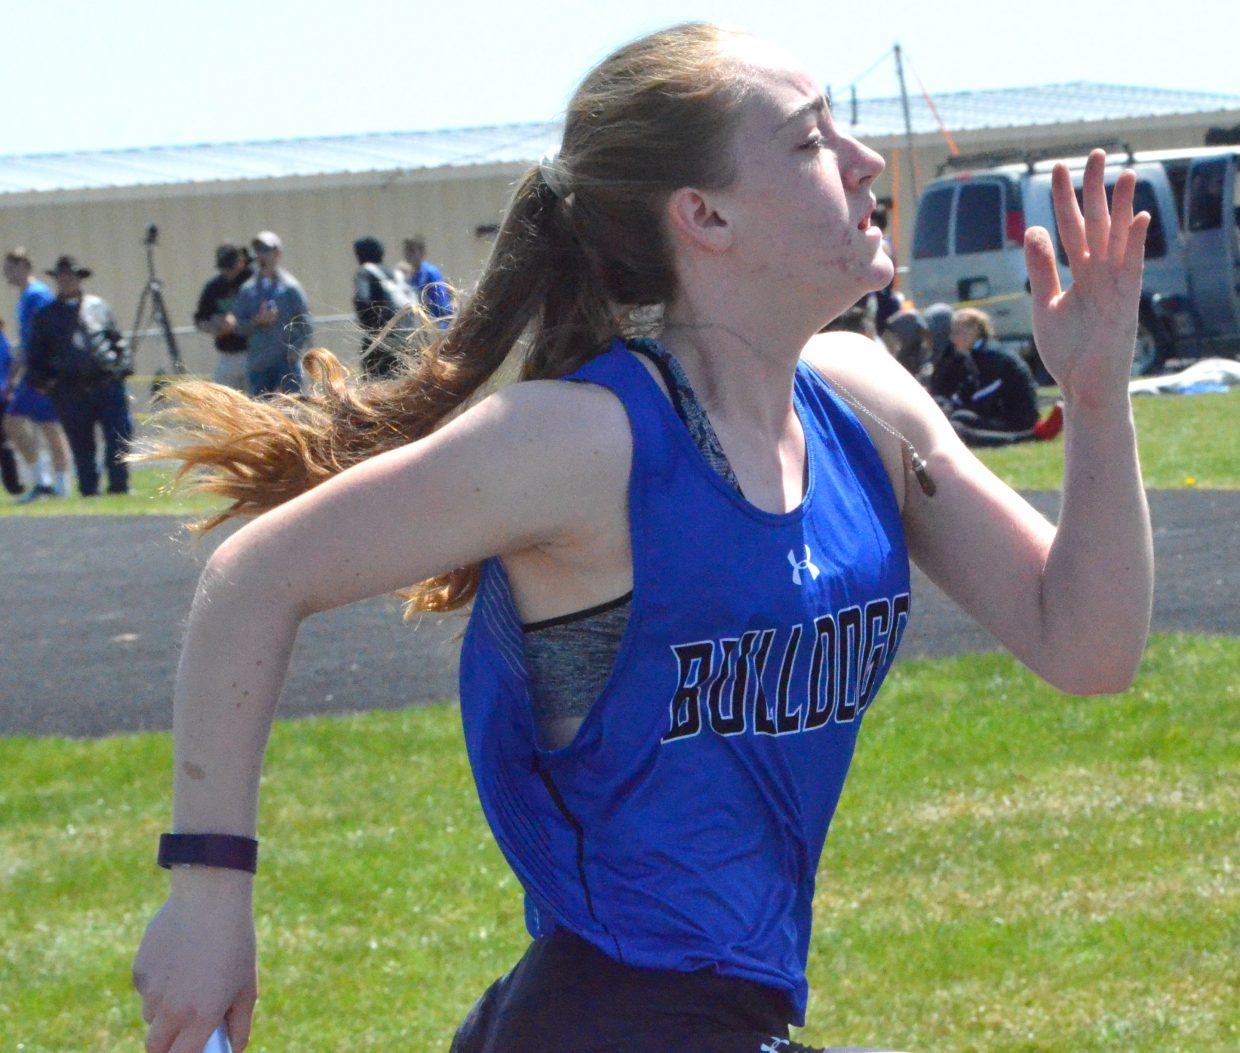 Moffat County High School's Raine Harrell gets moving in the girls 4x200-meter relay Friday at the Clint Wells Invitational.